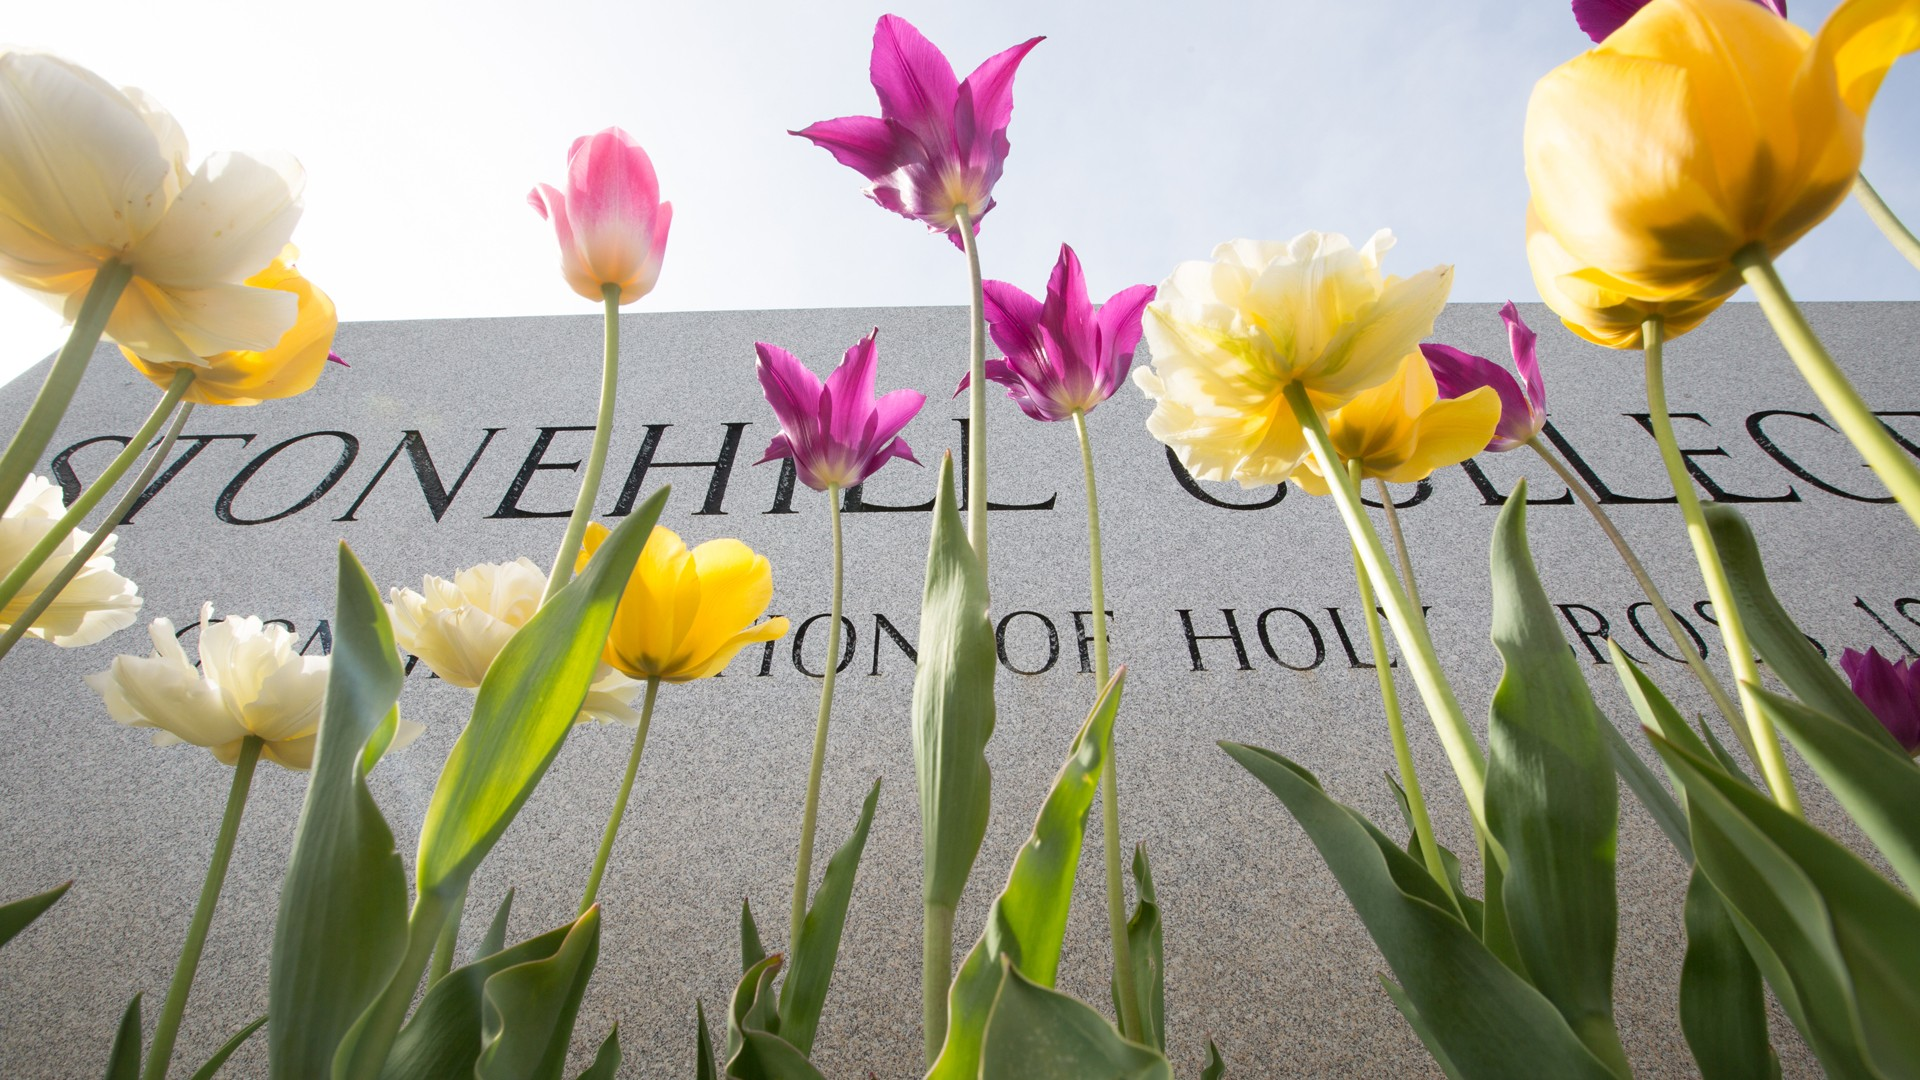 Stonehill College entrance sign with flowers